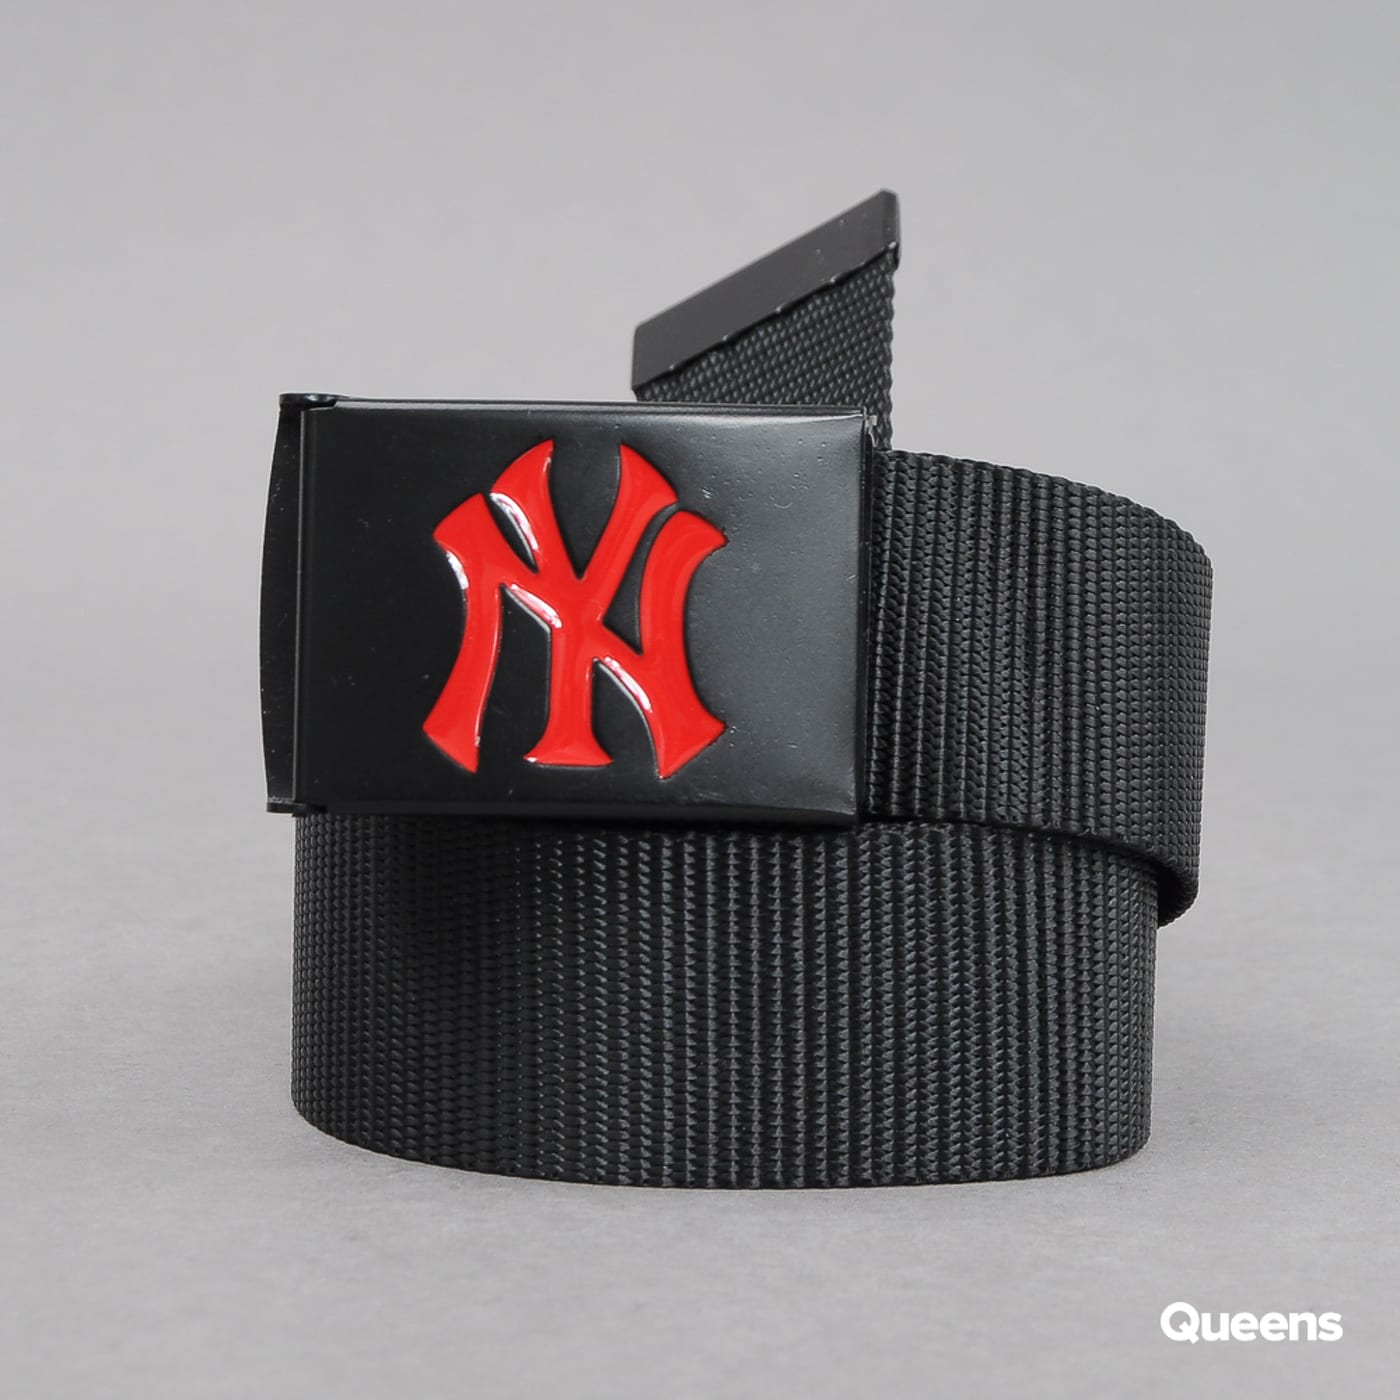 MD MLB Premium Black Woven Belt Single NY black / red